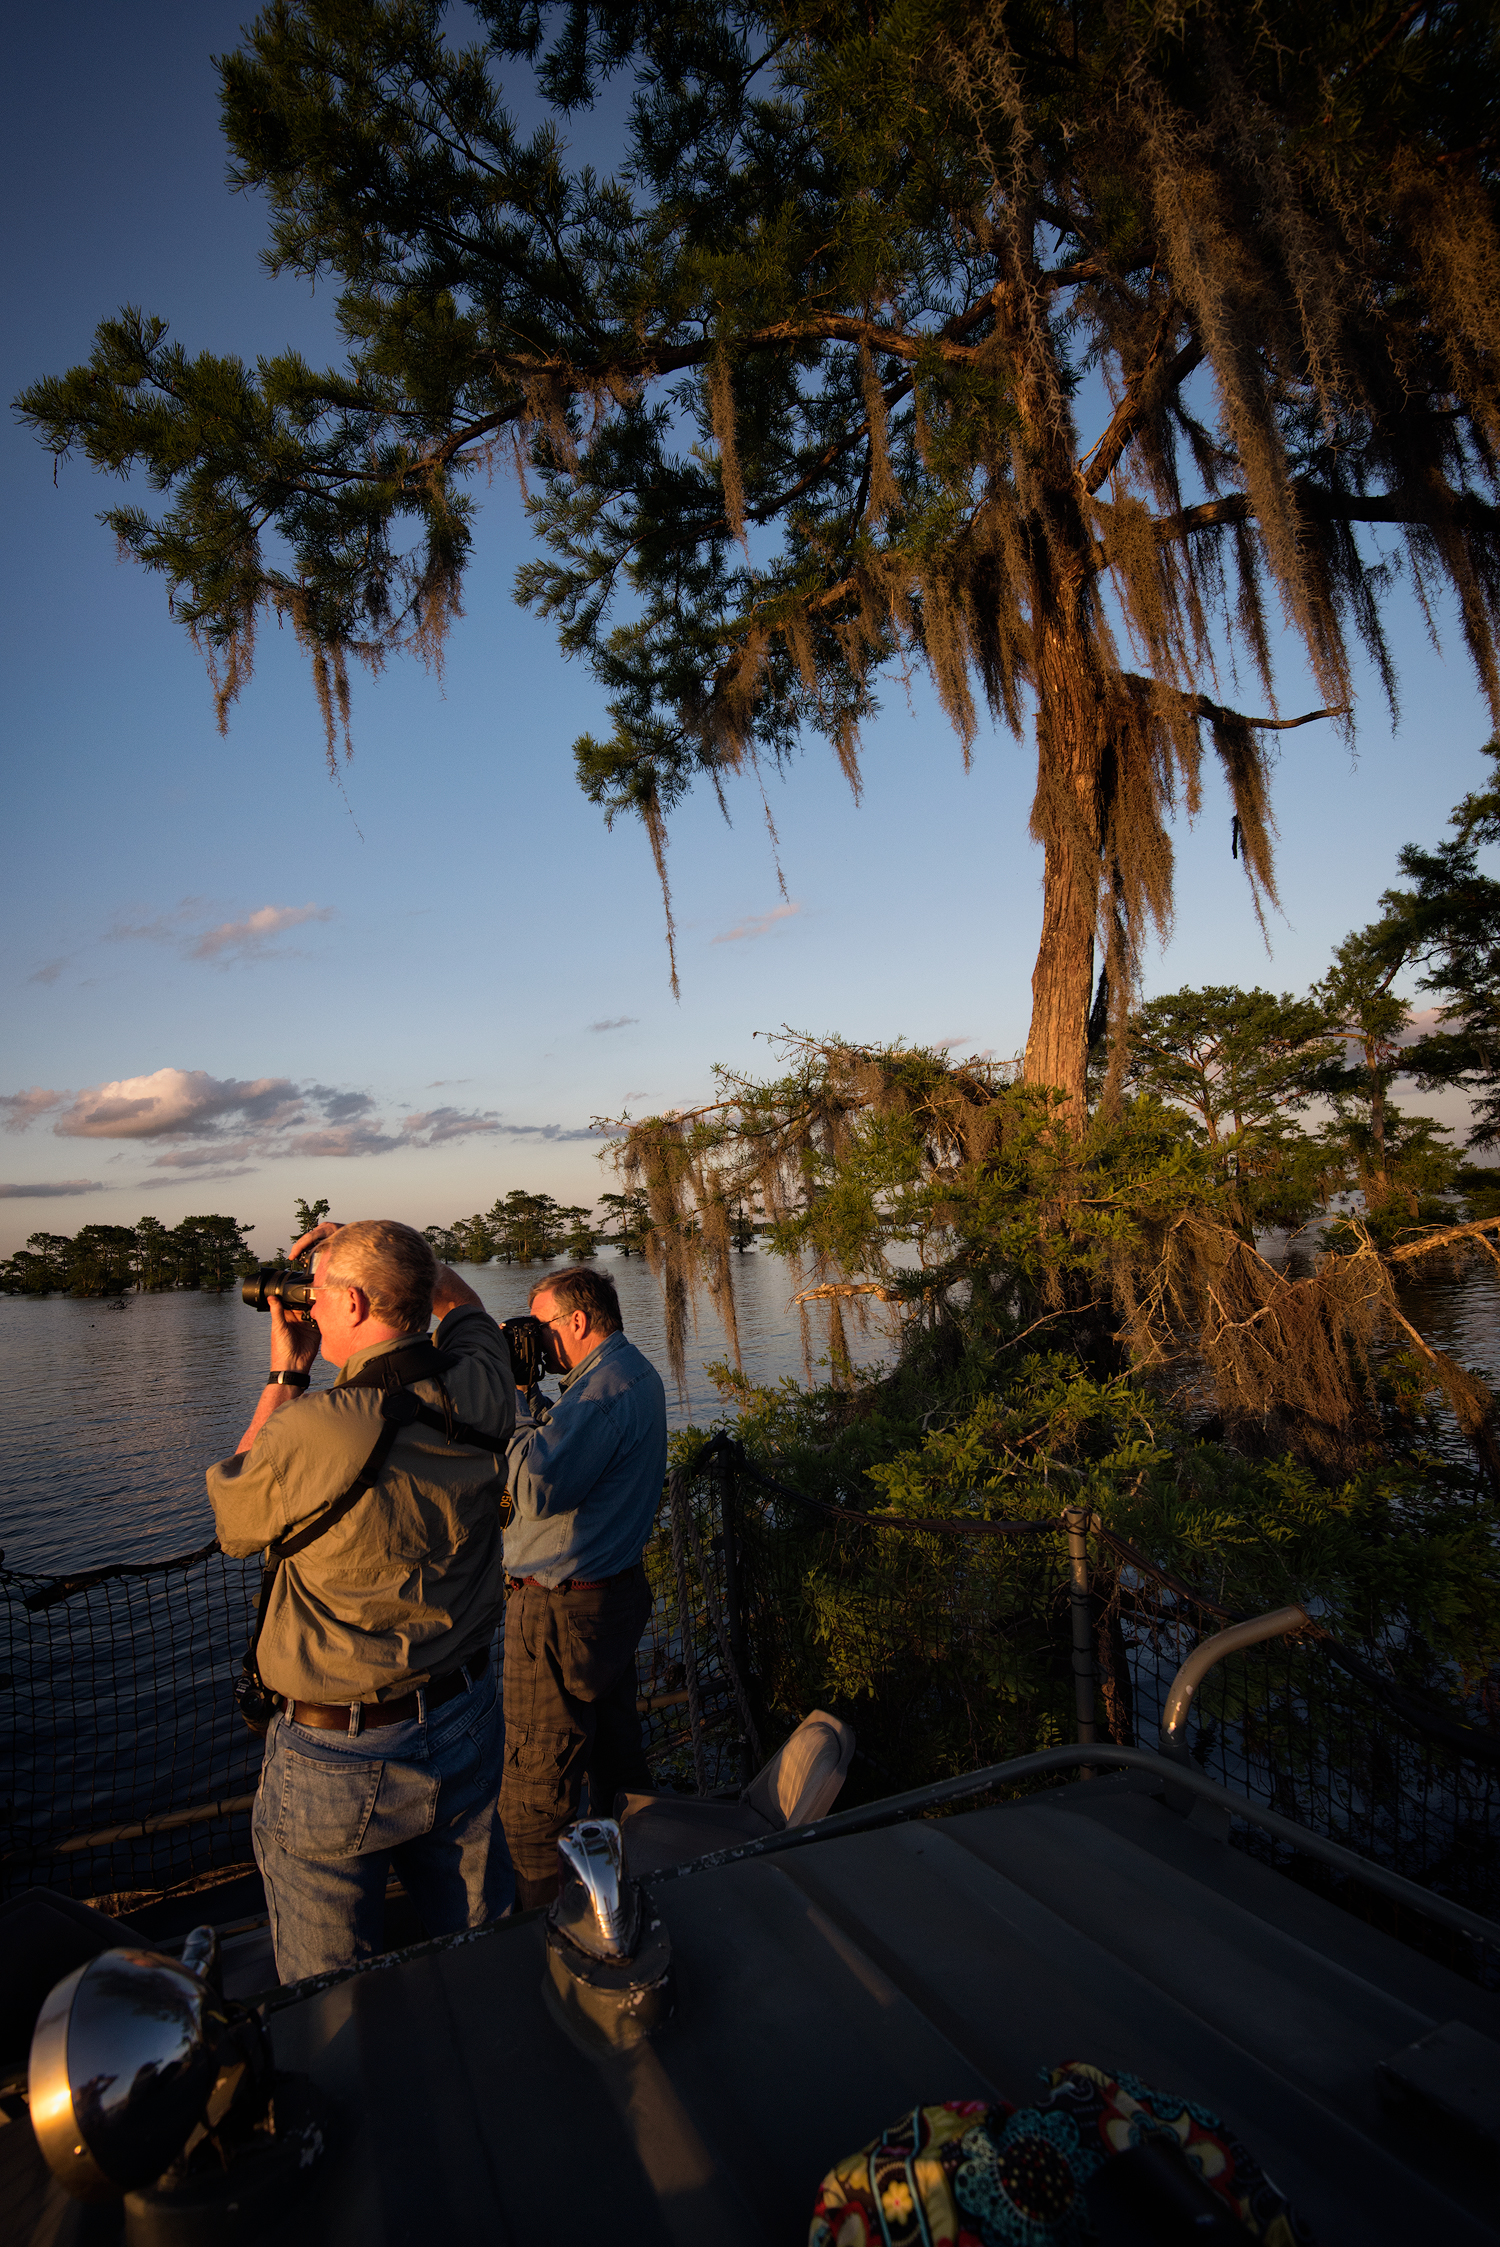 Shooting the Sunset in the Atchafalaya Basin